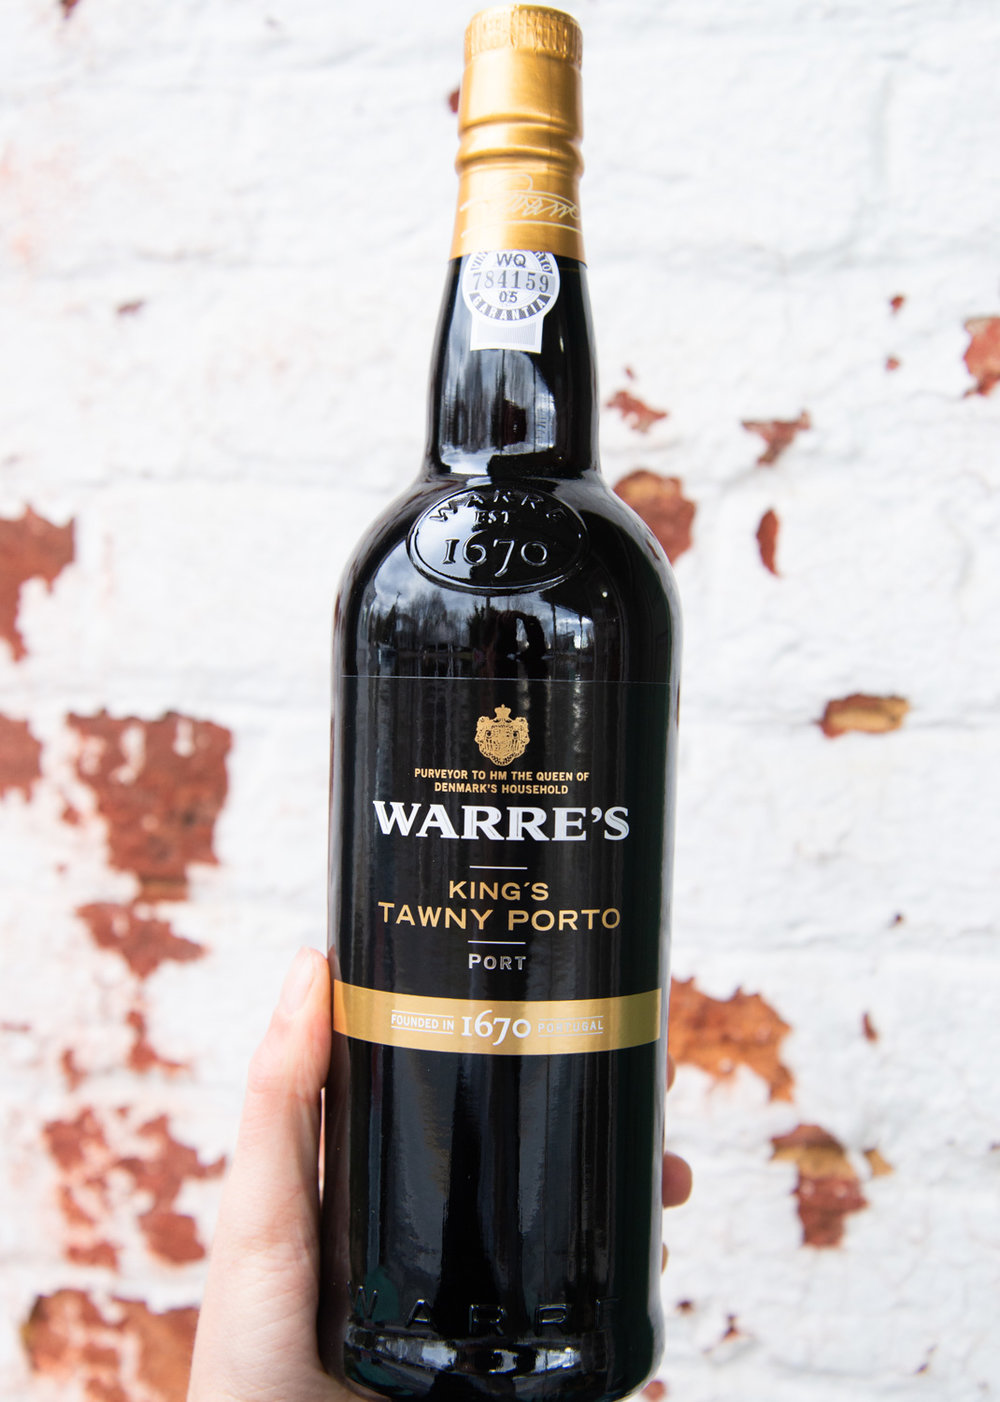 Warre's King's Tawny NV - Retail: $17.95 | Sale $16.15Warres Kings Tawny is aged in oak casks for an average of 3 years, and then bottled when ready to drink. In the glass it greets you with a beautiful amber color and a slightly nutty character on the nose. Flavors of cocoa powder, plum tart, and dark coffee smooth out onto the palate. It drinks pure and fresh with a luscious, long finish.